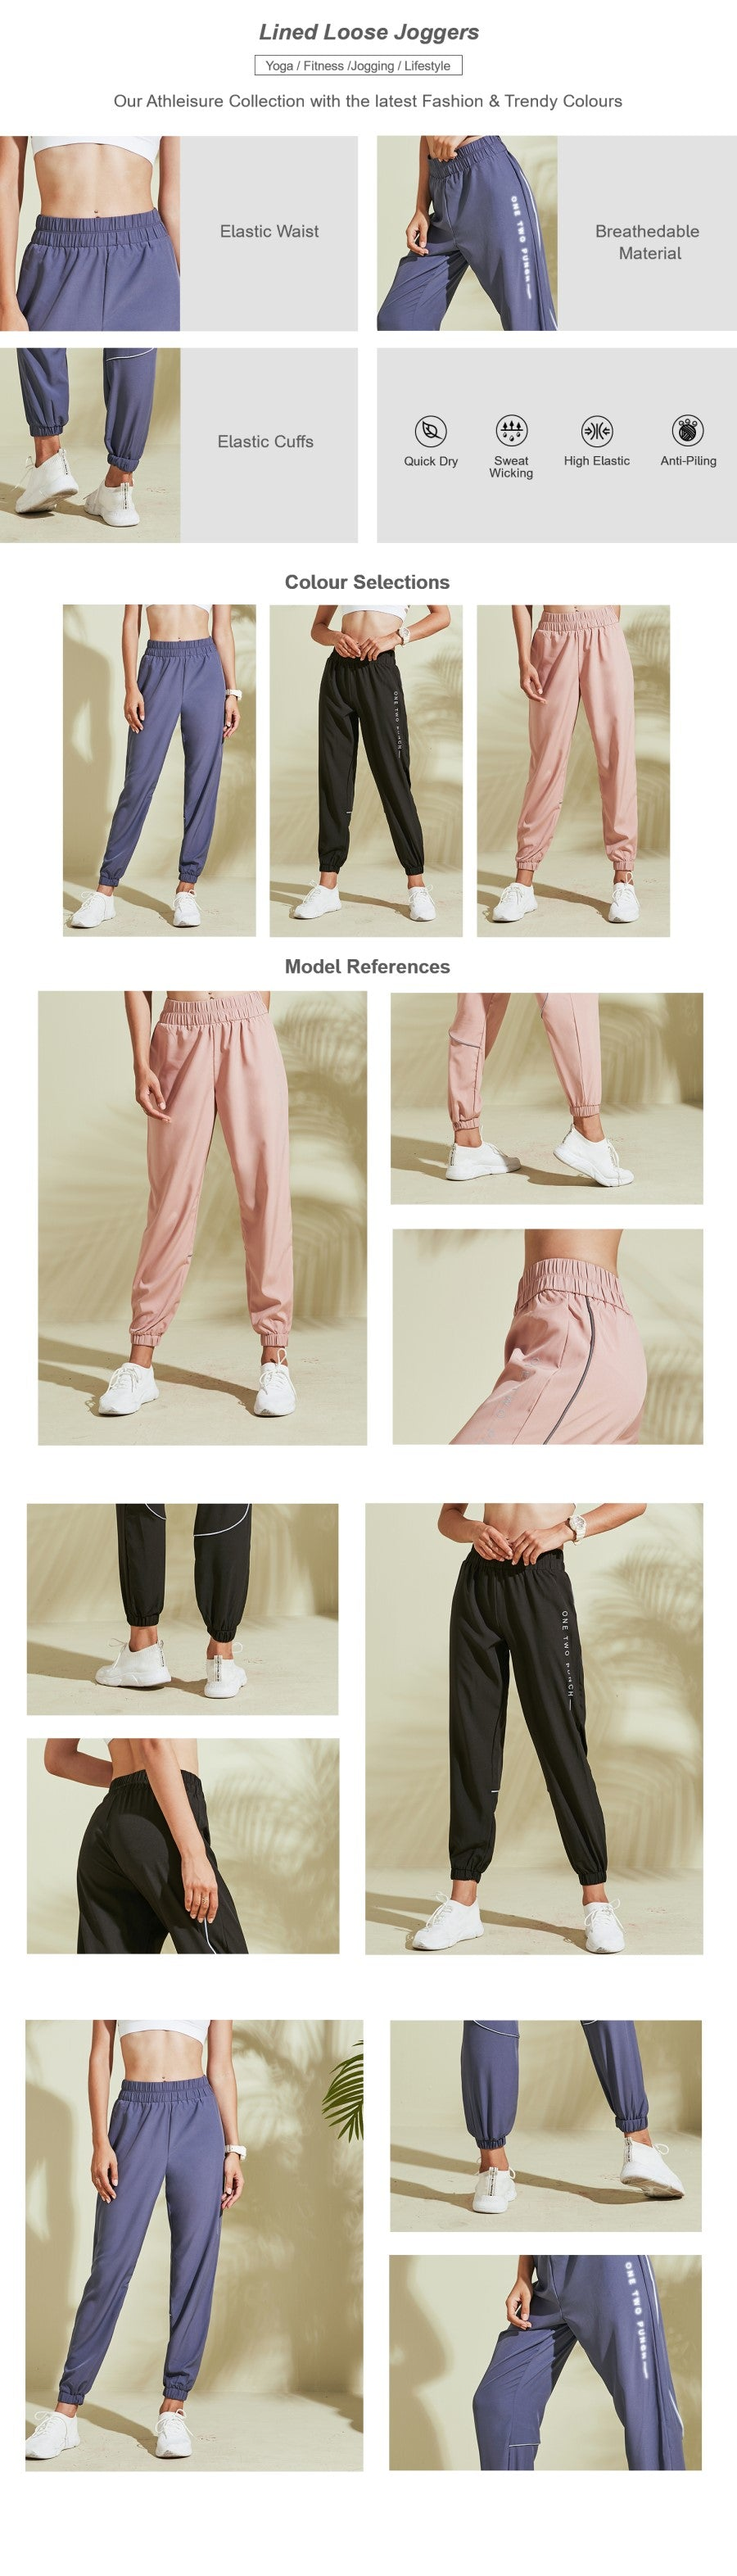 Lined Loose Joggers